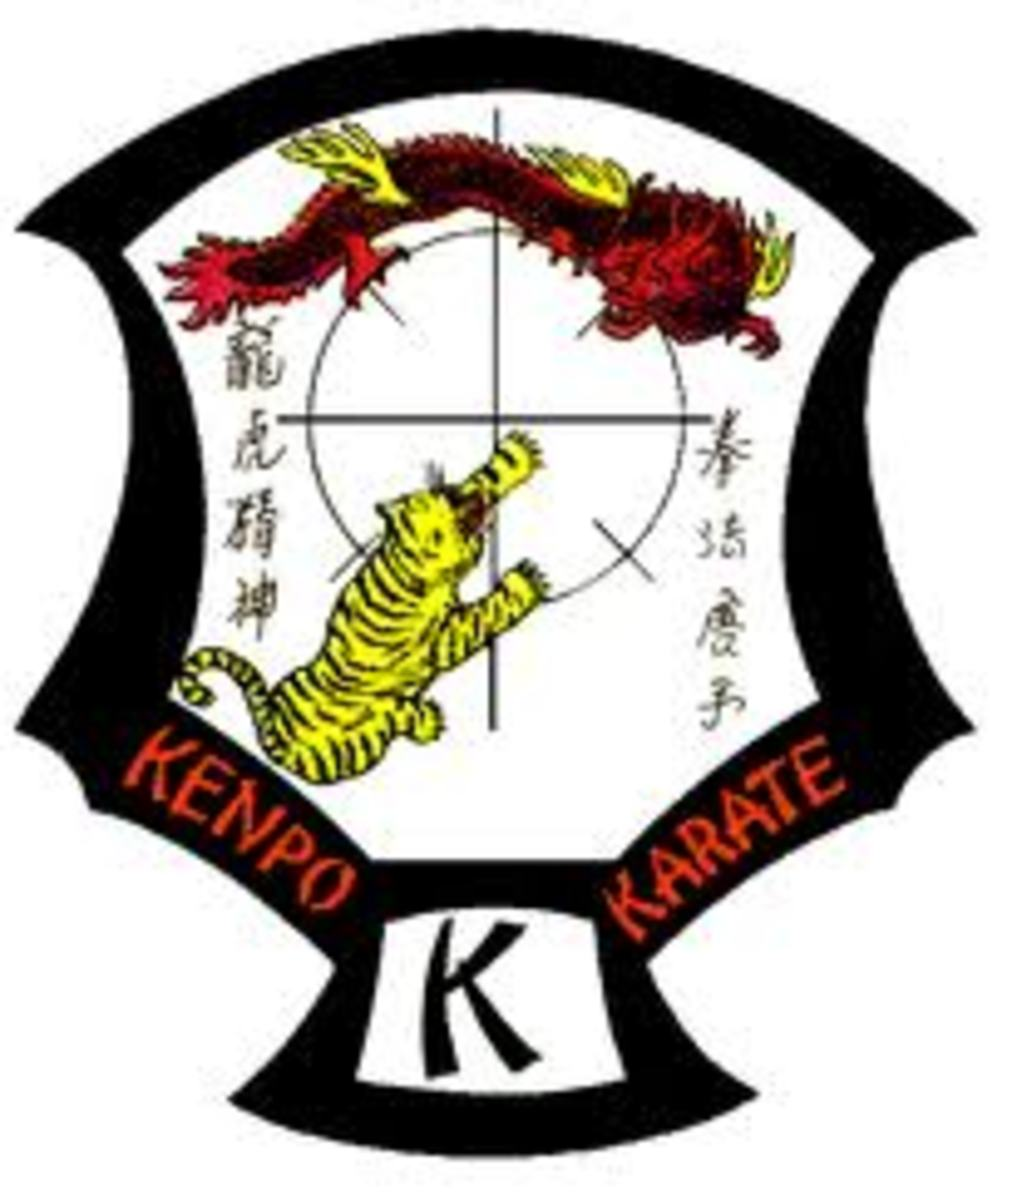 The Kenpo Crest. In the middle of the crest is a circle with lines running vertically and horizontally through, and shorter lines along 45 degree angles on the circle. These show angles of attack and defense, clearly also showing geometric principles